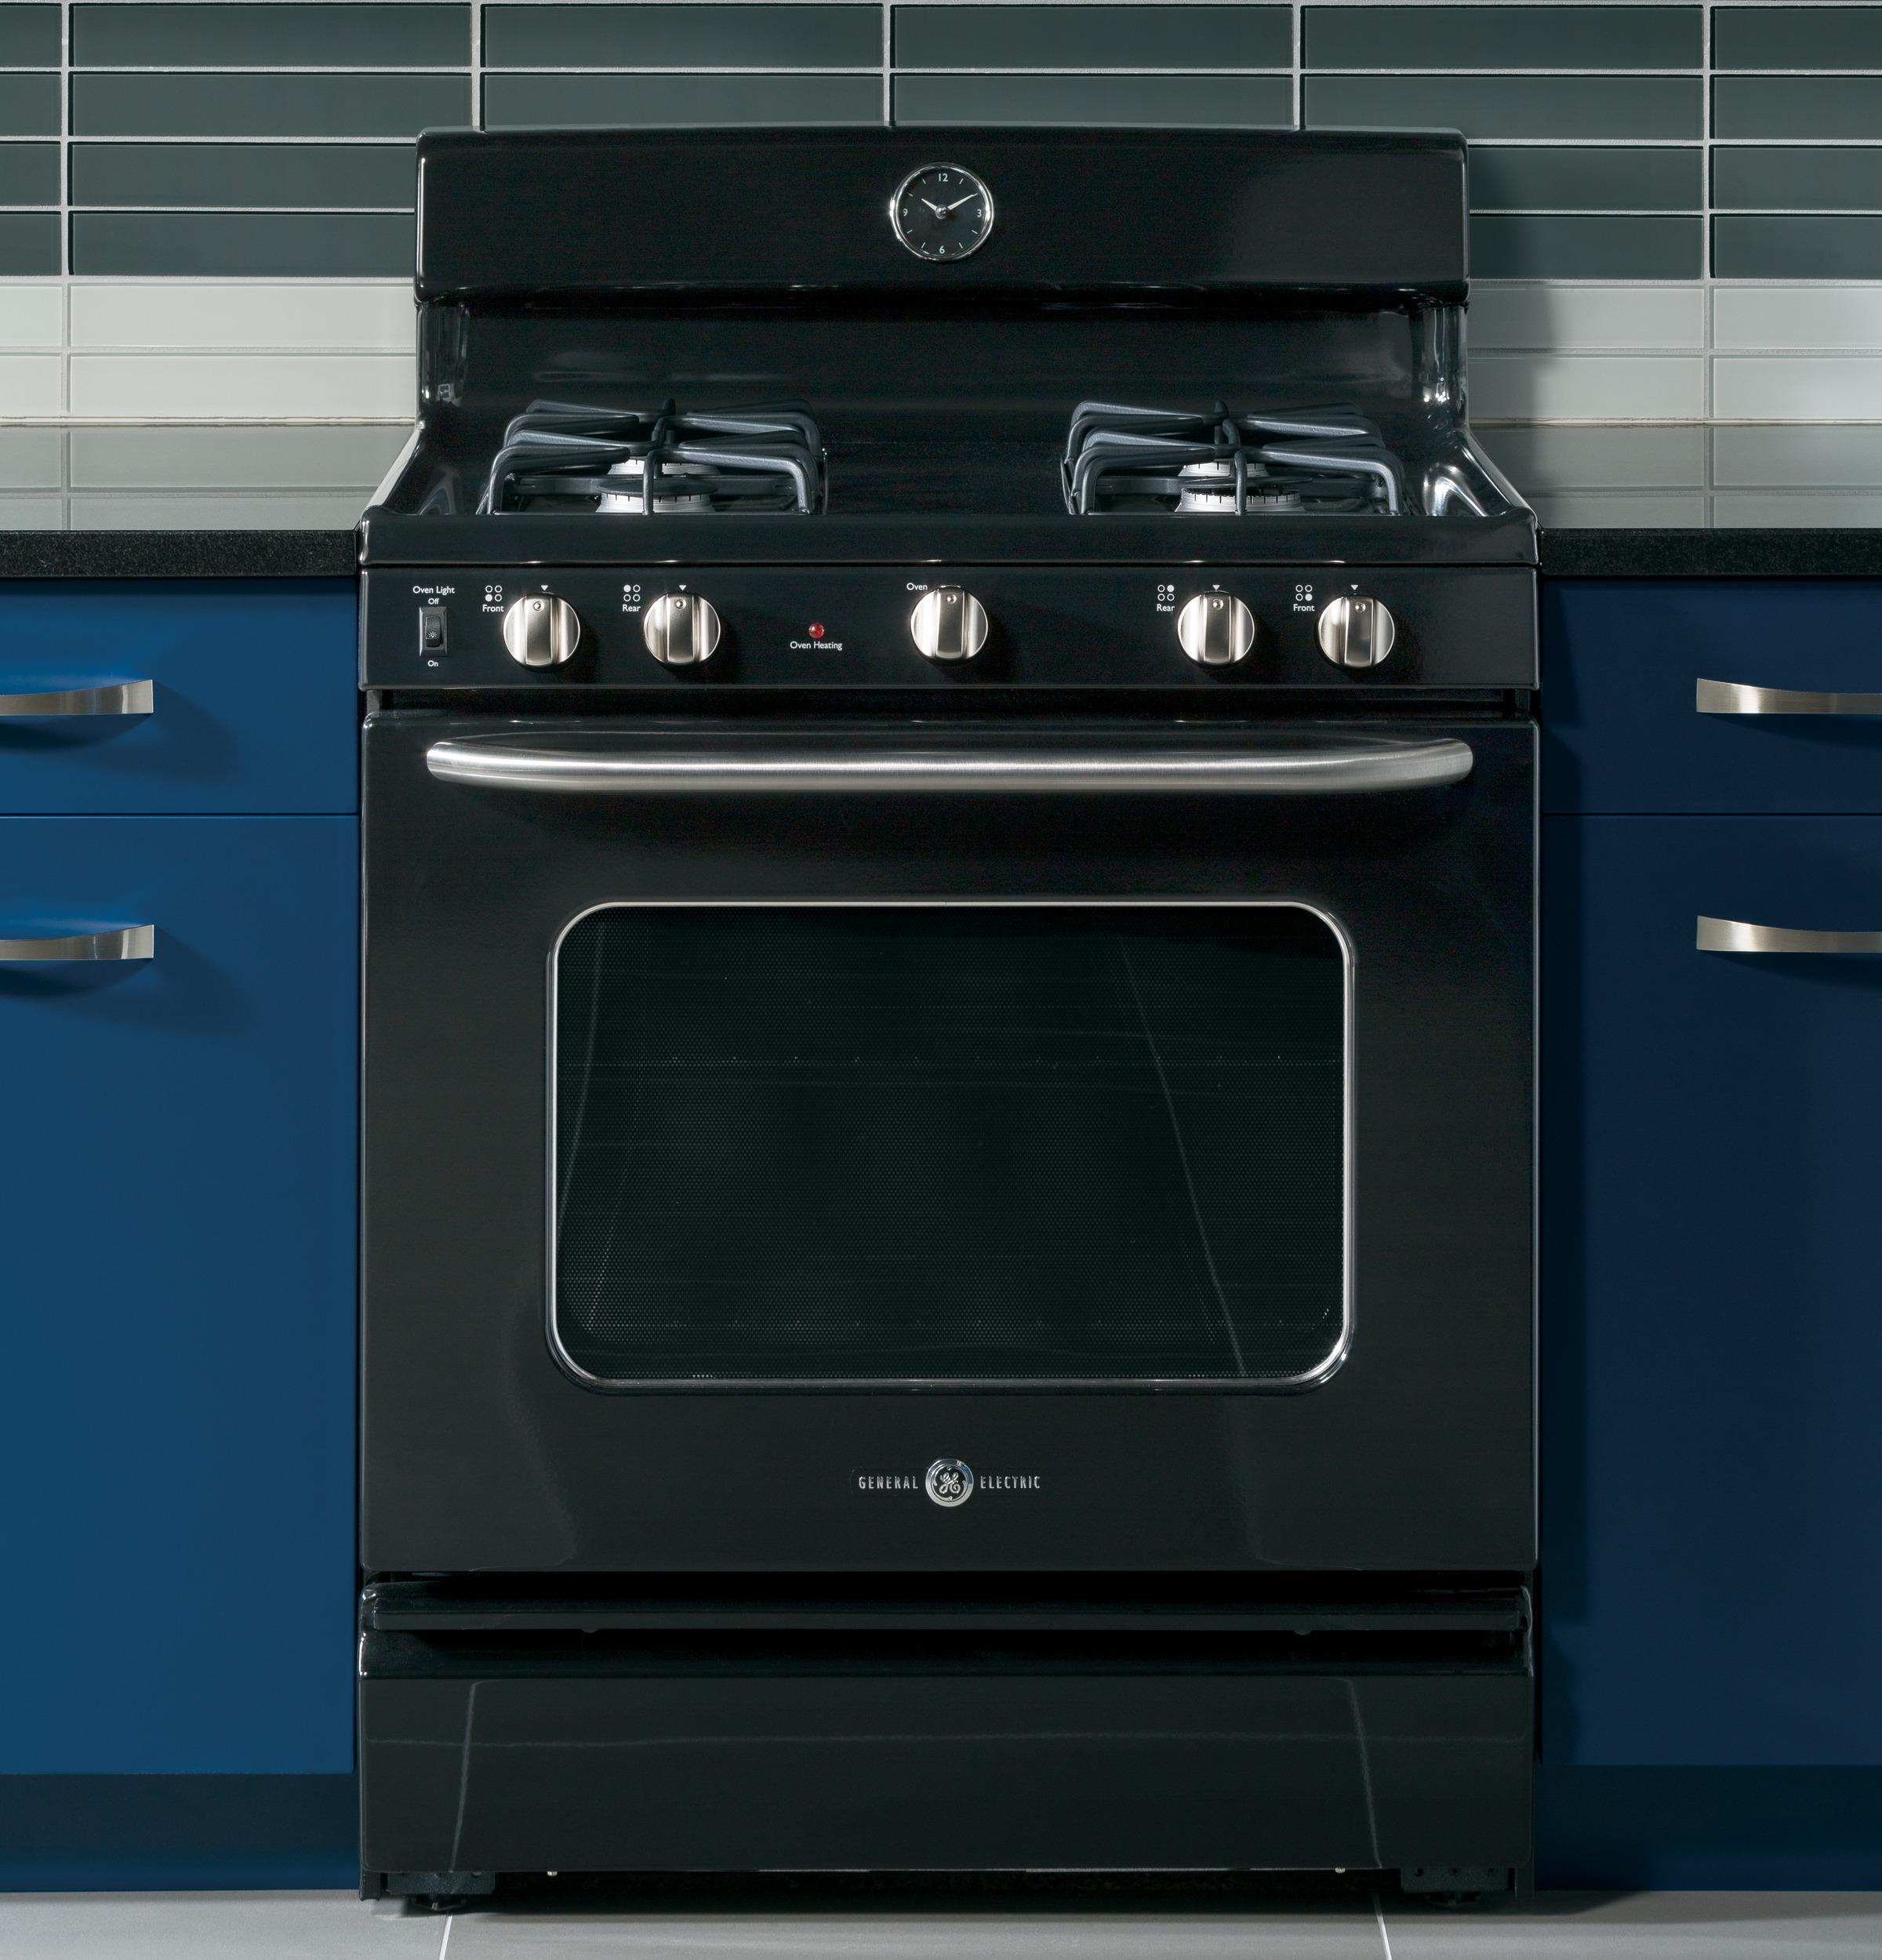 General Electric Appliances ~ Agbs defbs general electric ge artistry